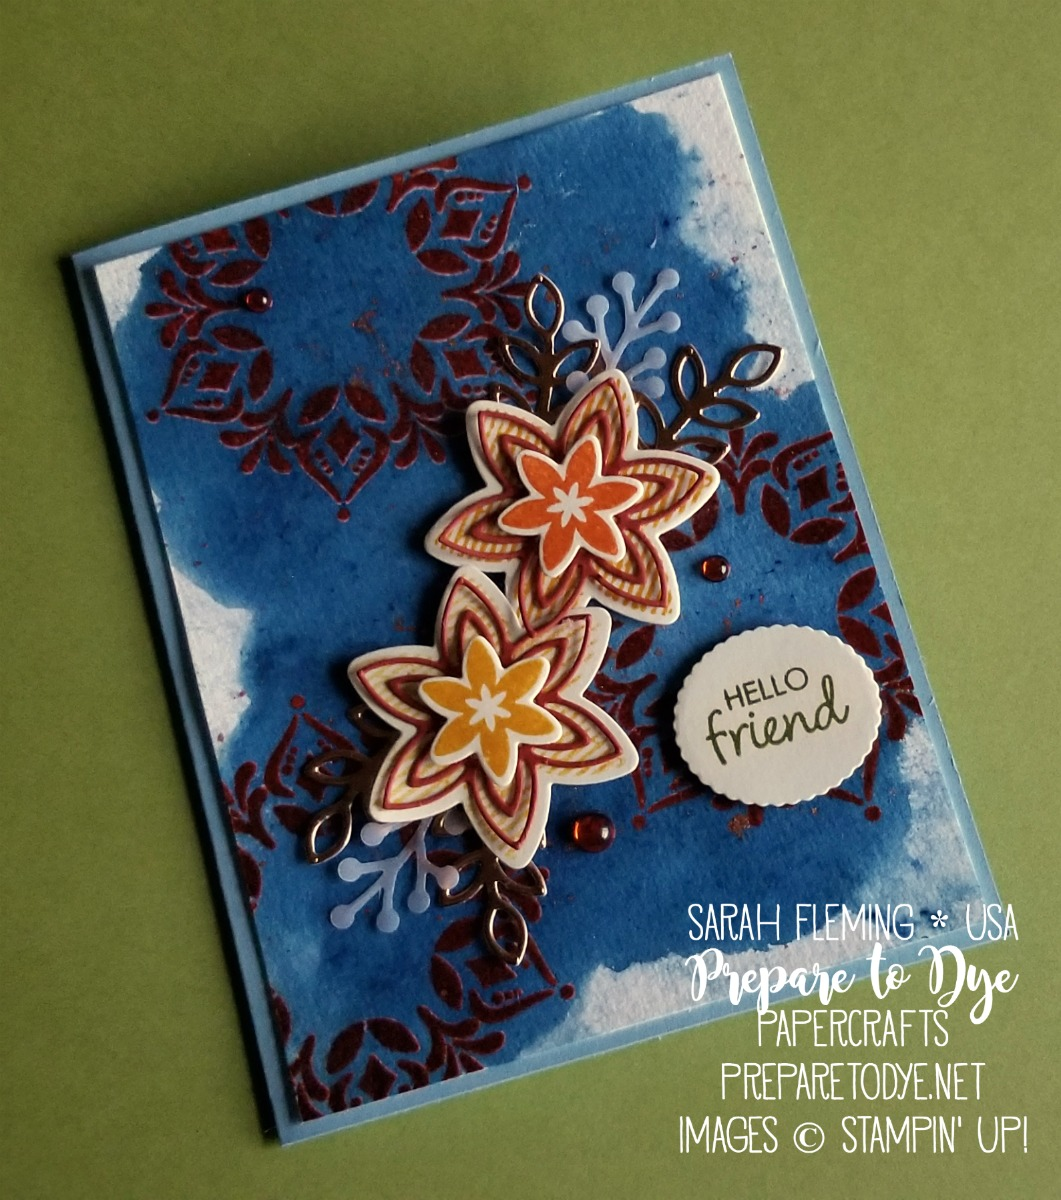 Stampin' Up! handmade autumn fall card using Happiness Surrounds limited time stamp set and limited time Snowfall thinlits dies with Alpine Sports thinlits dies and Brusho - Sarah Fleming - Prepare to Dye Papercrafts